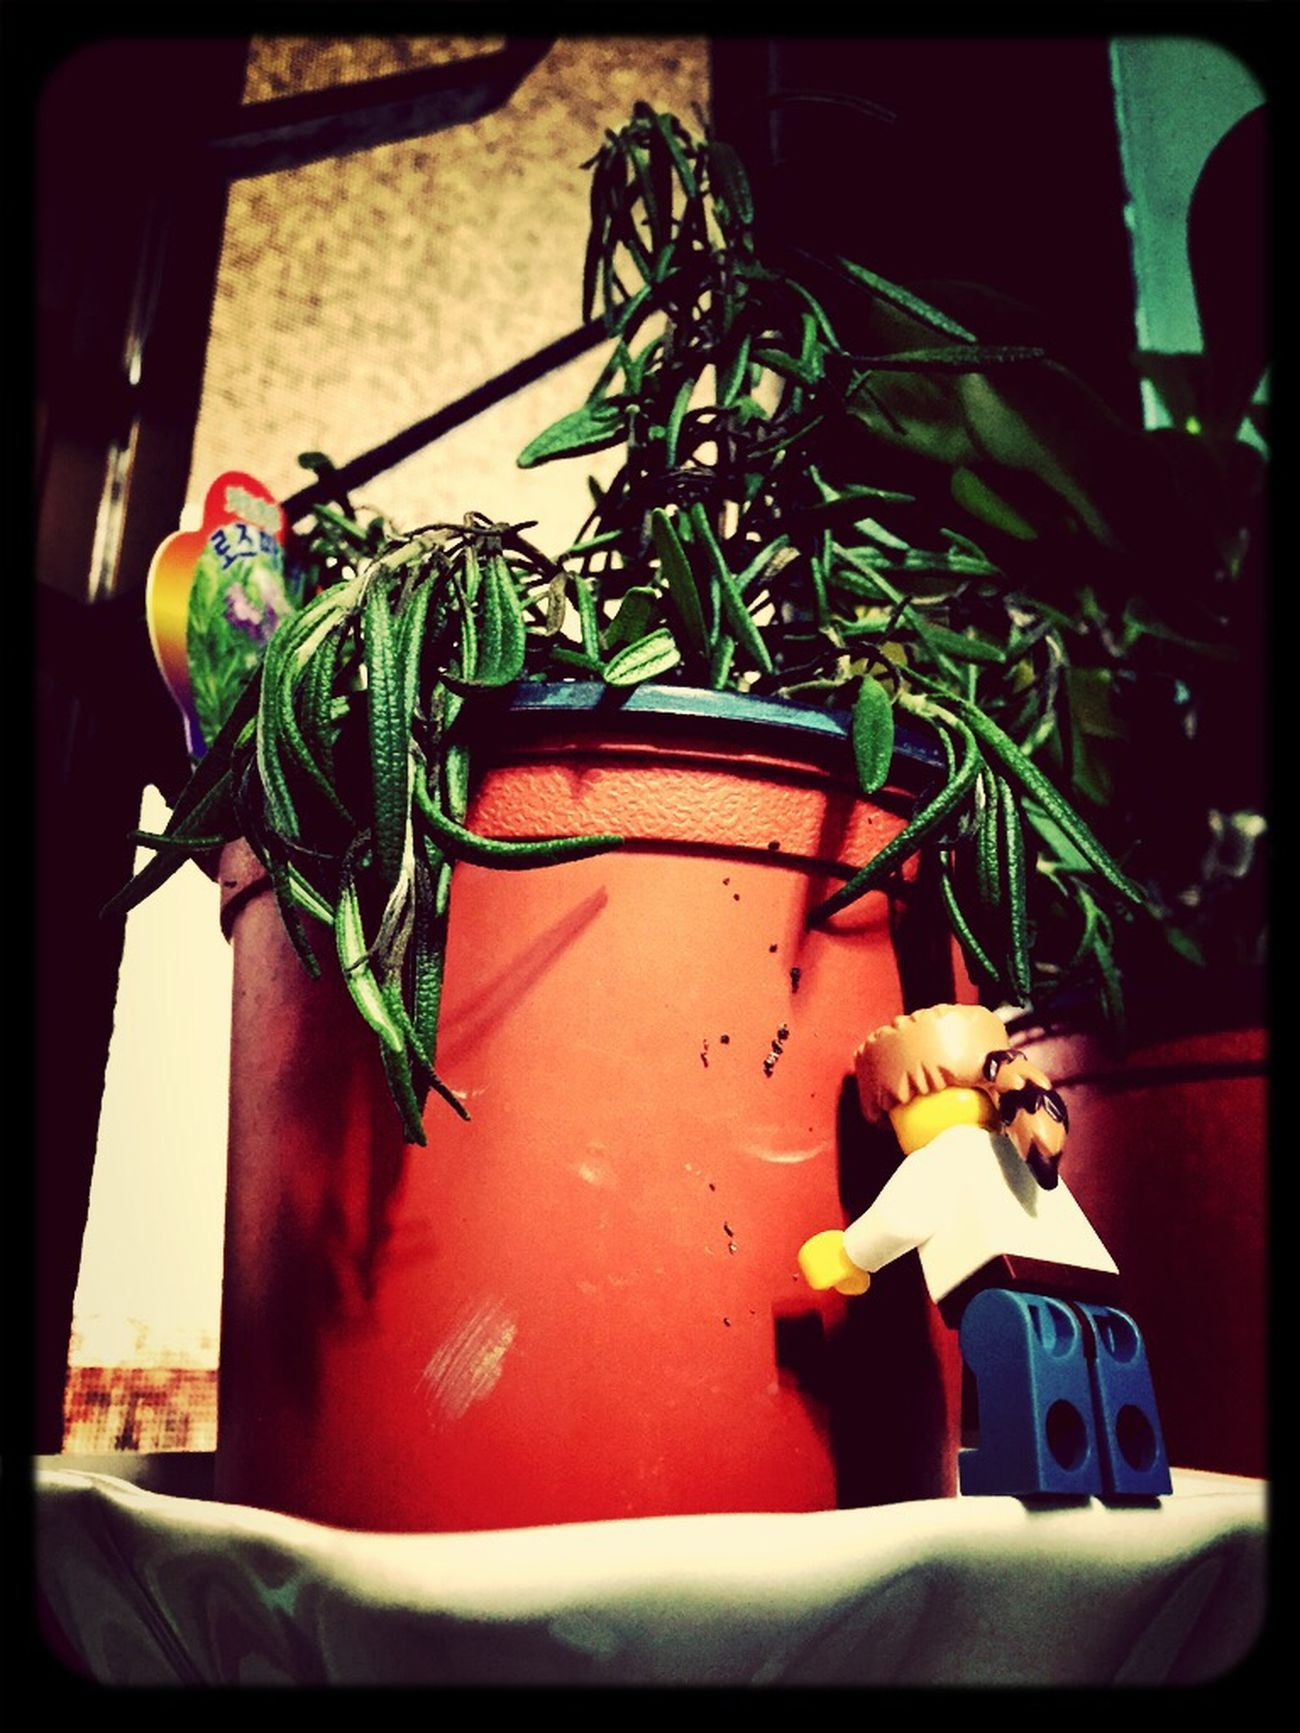 Lego Minifigures LEGO Plants Plants 🌱 Fatigue  Iphone6 Taking Photos Seoul, Korea Seoul Taking Photos